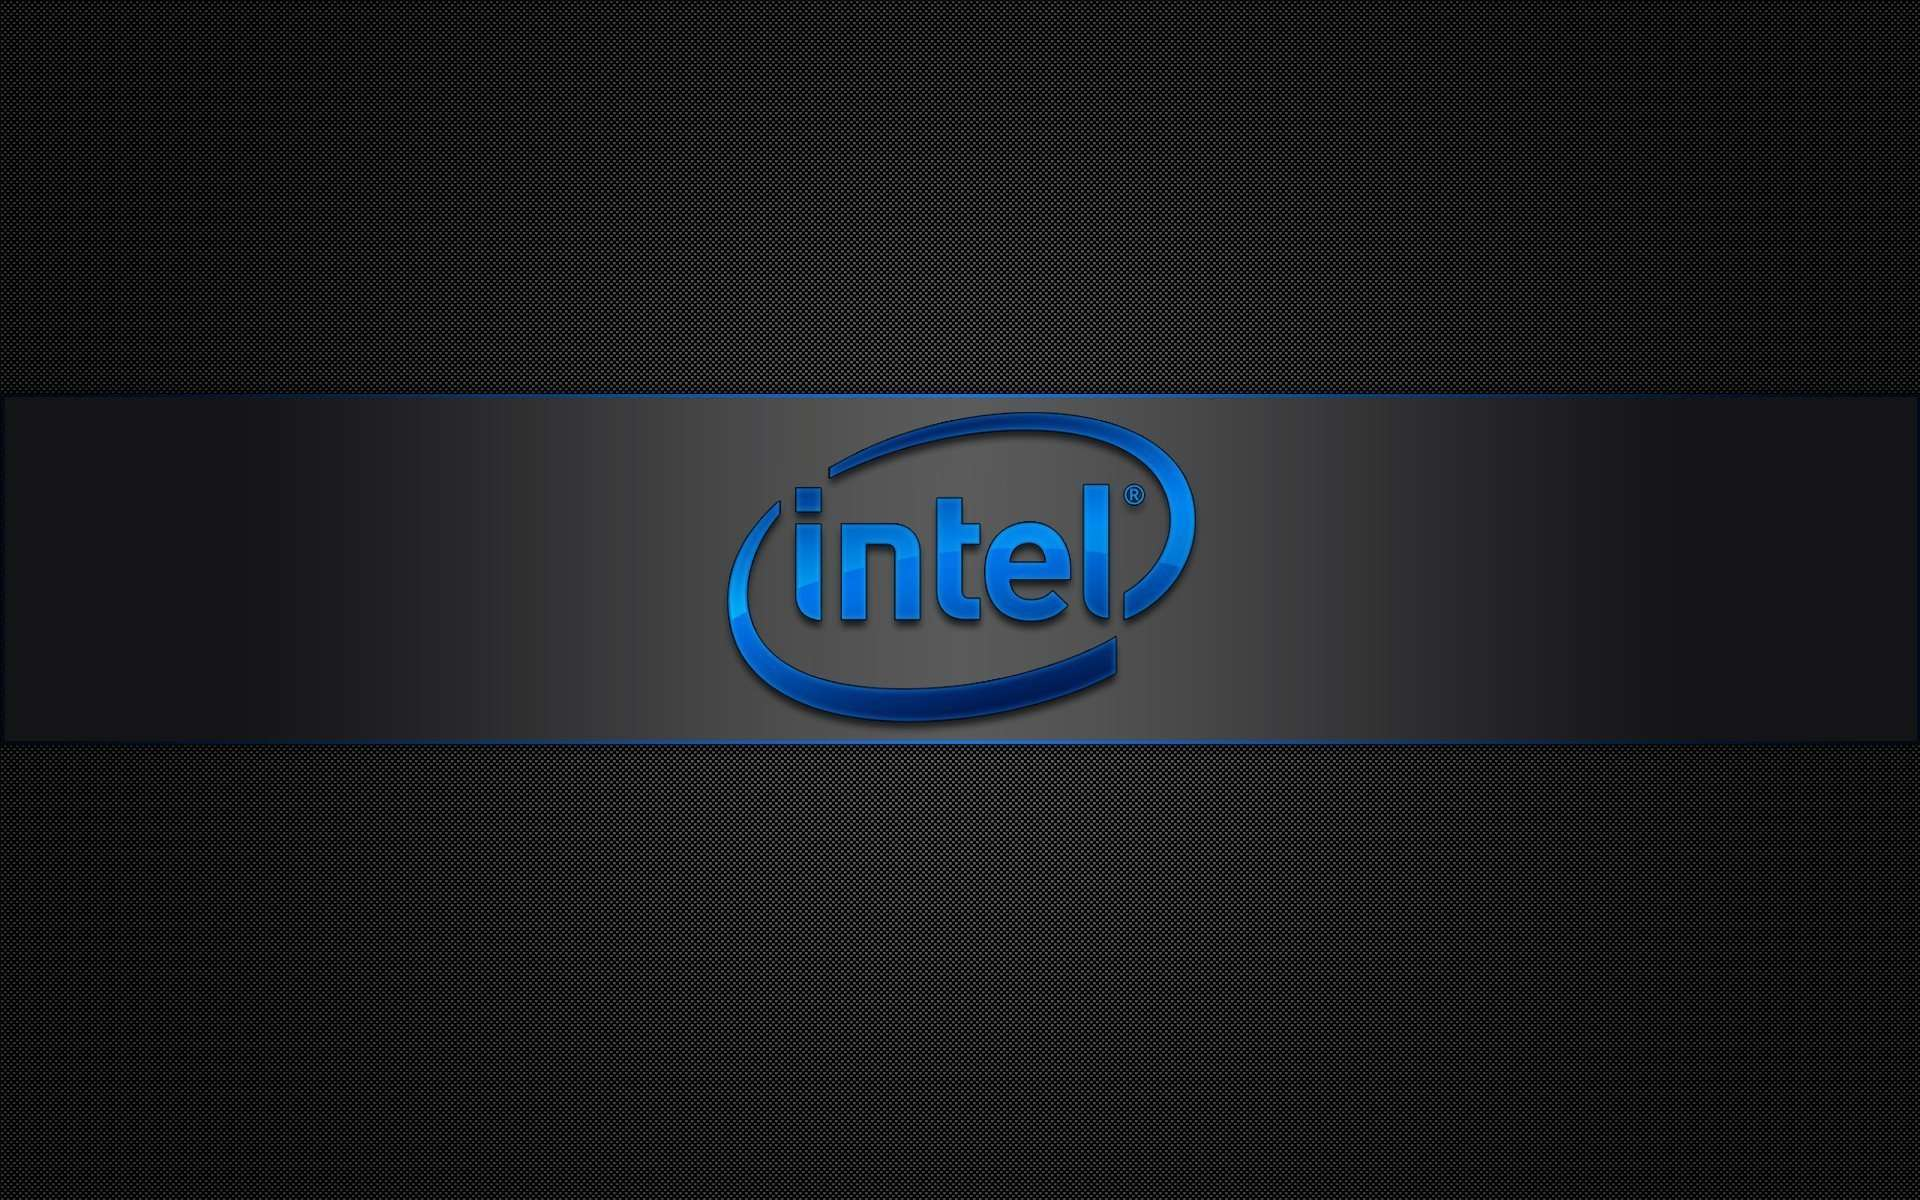 Intel Wallpapers Page 1